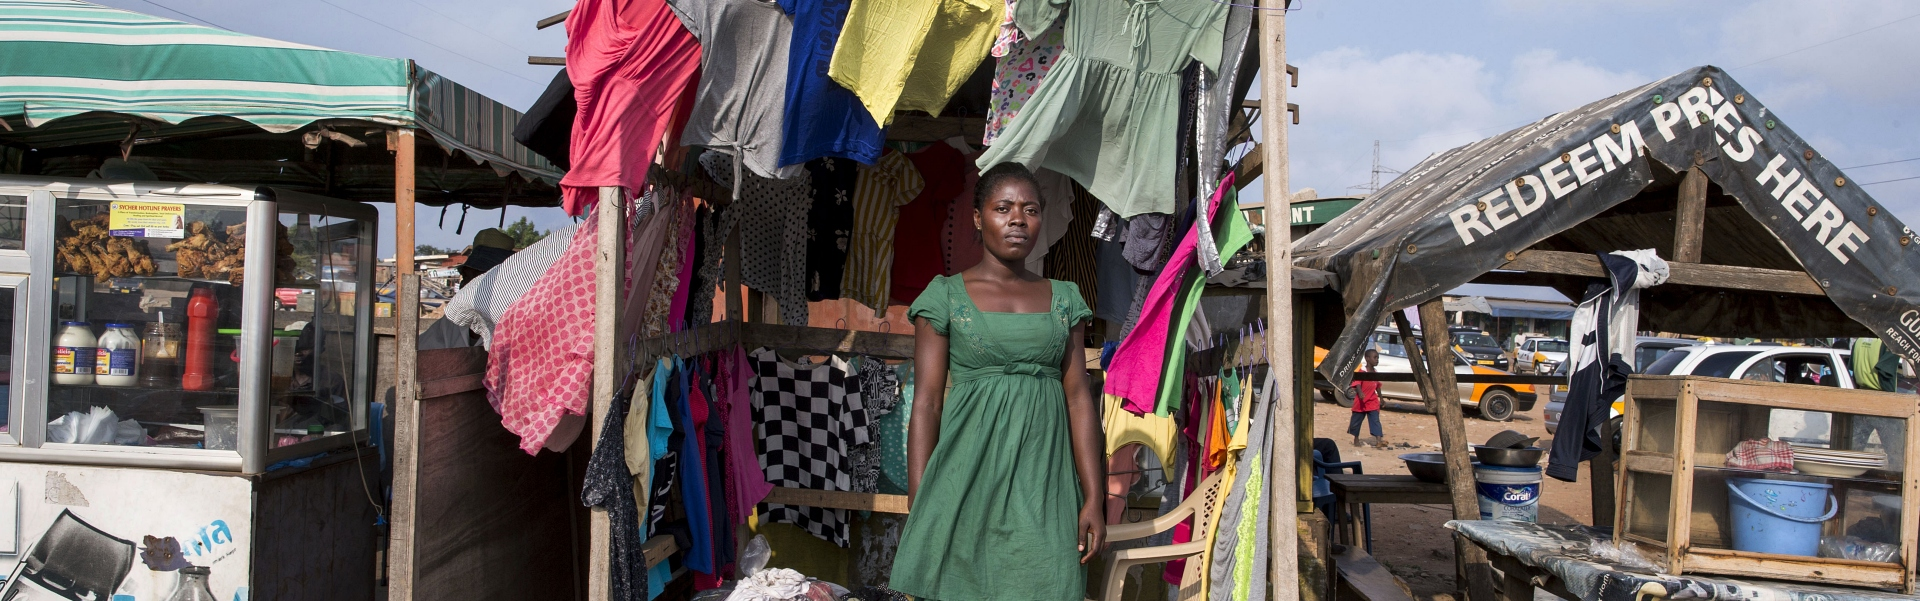 Ghanaian woman standing in clothing stall in wind